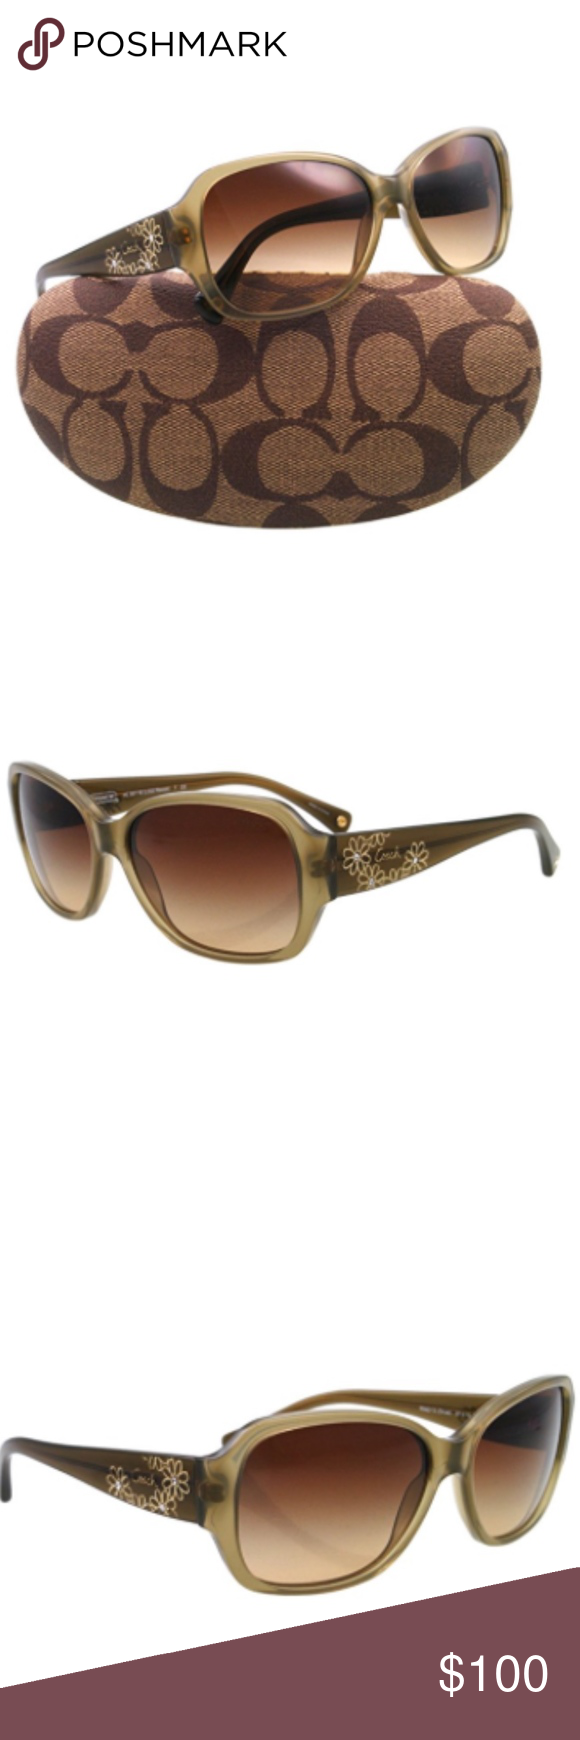 16411dce15b ... official store coach olive reese sunglasses 0c5c4 8dfc7 ...